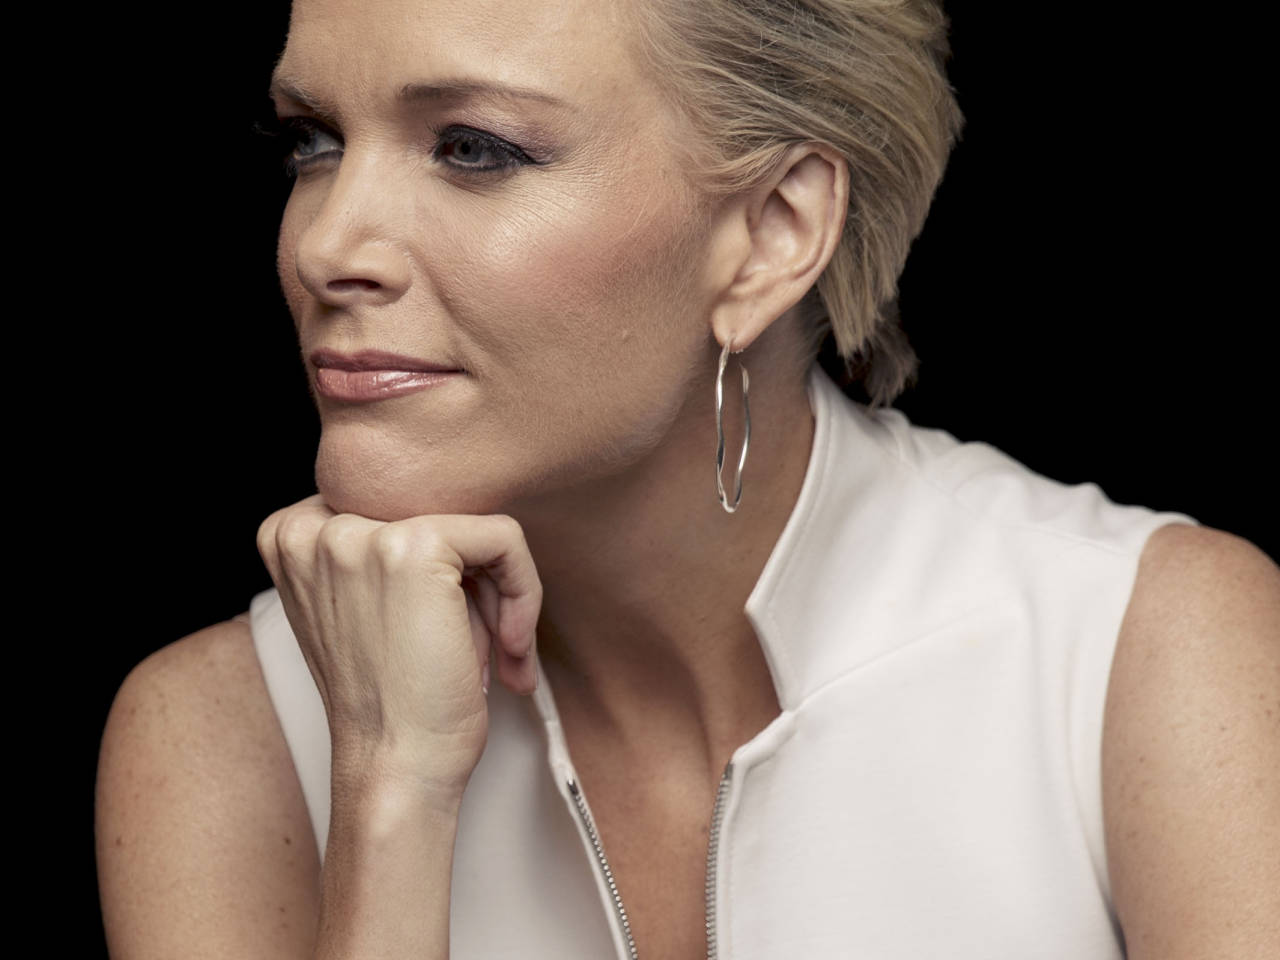 """I didn't want to sit for some hand-to-hand combat"": 5 takeaways from WaPo's interview with Megyn Kelly about her sitdown with Donald Trump - Salon.com"